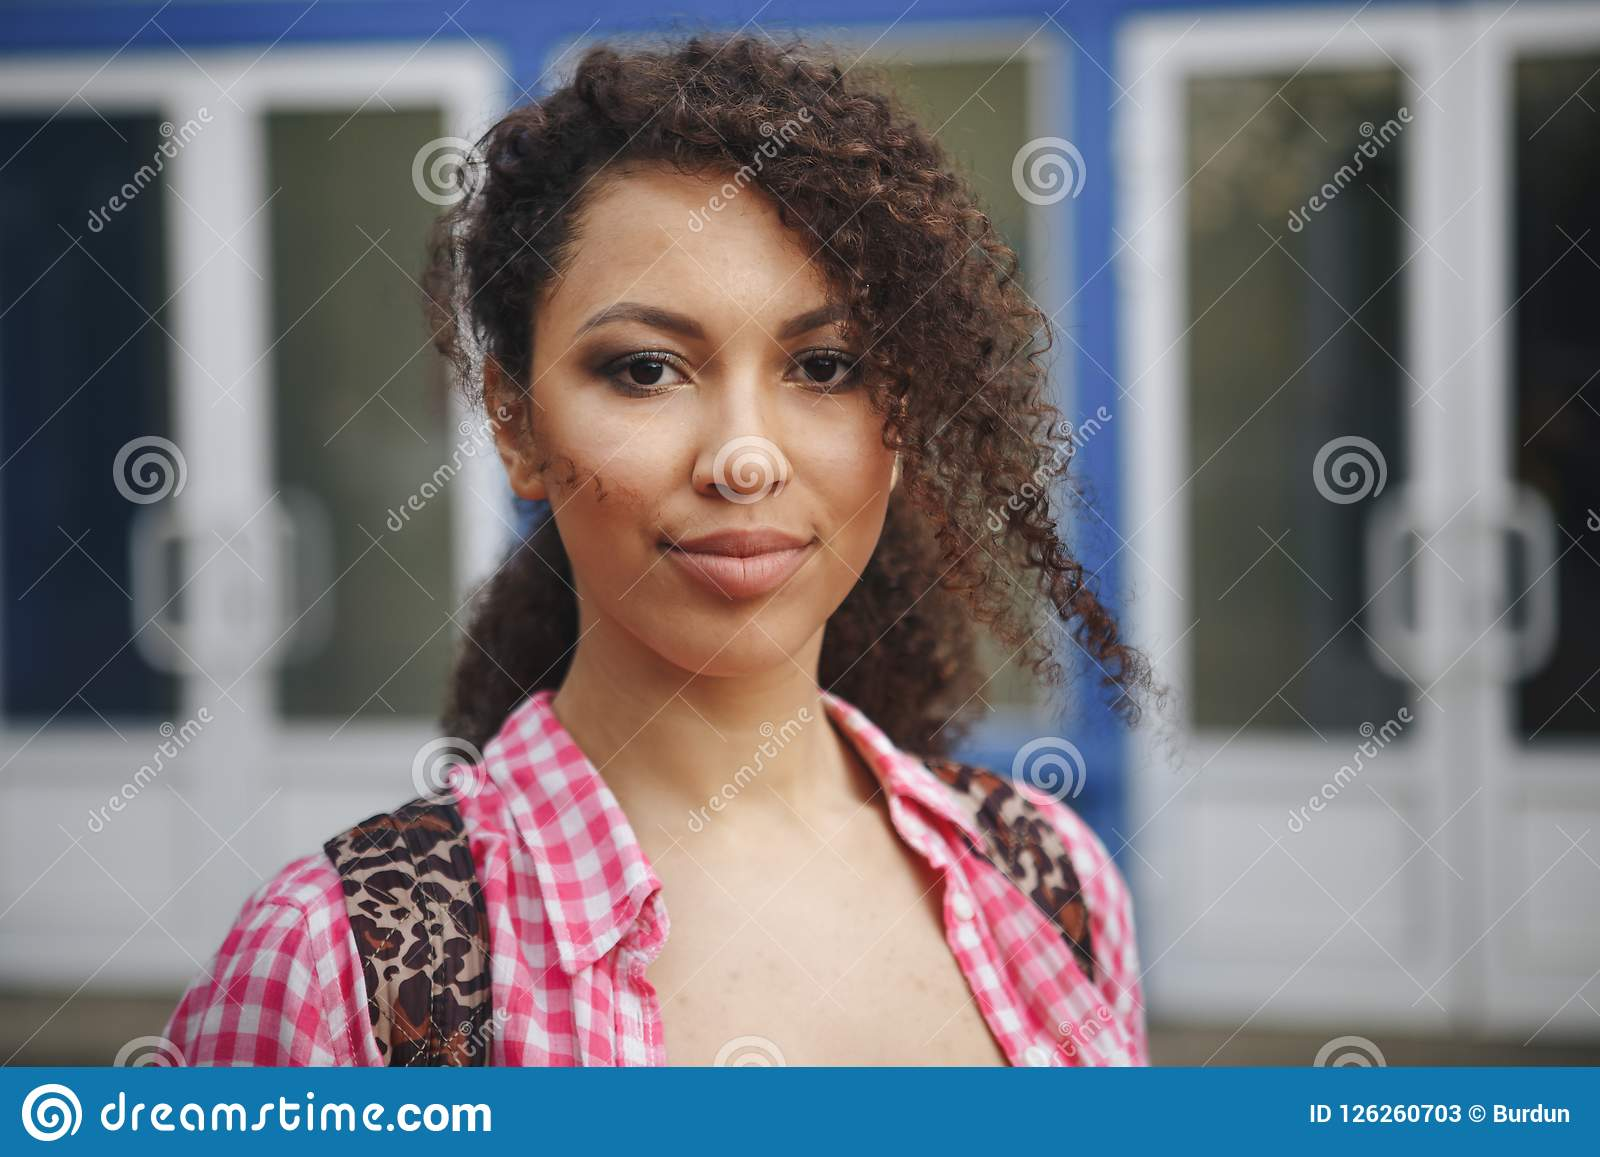 Close up portrait of a beautiful young woman with curly hair